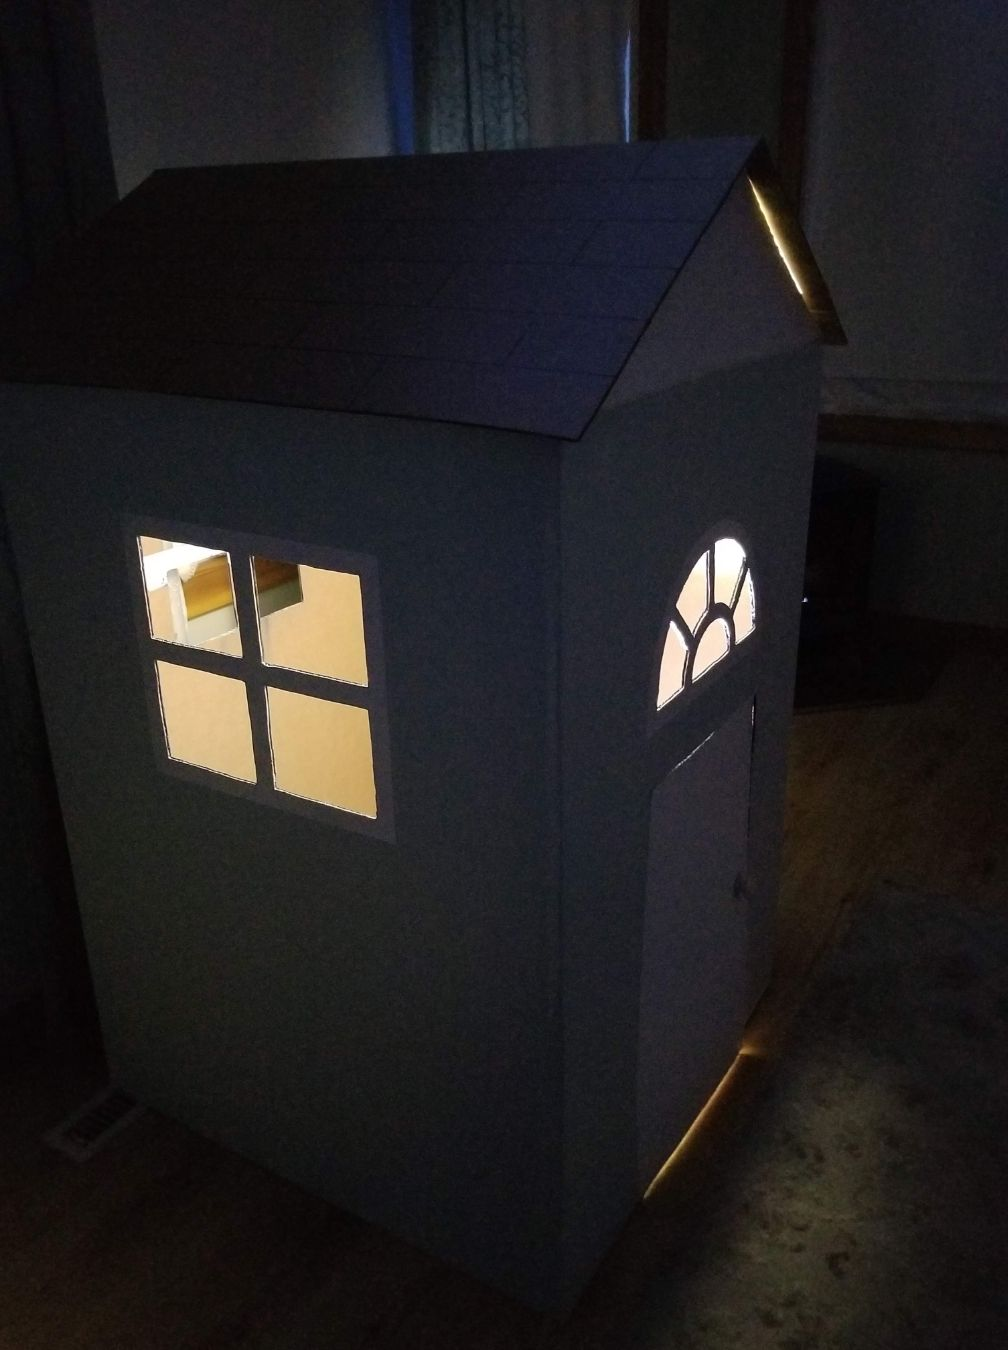 Add a light for more cardboard playhouse fun.